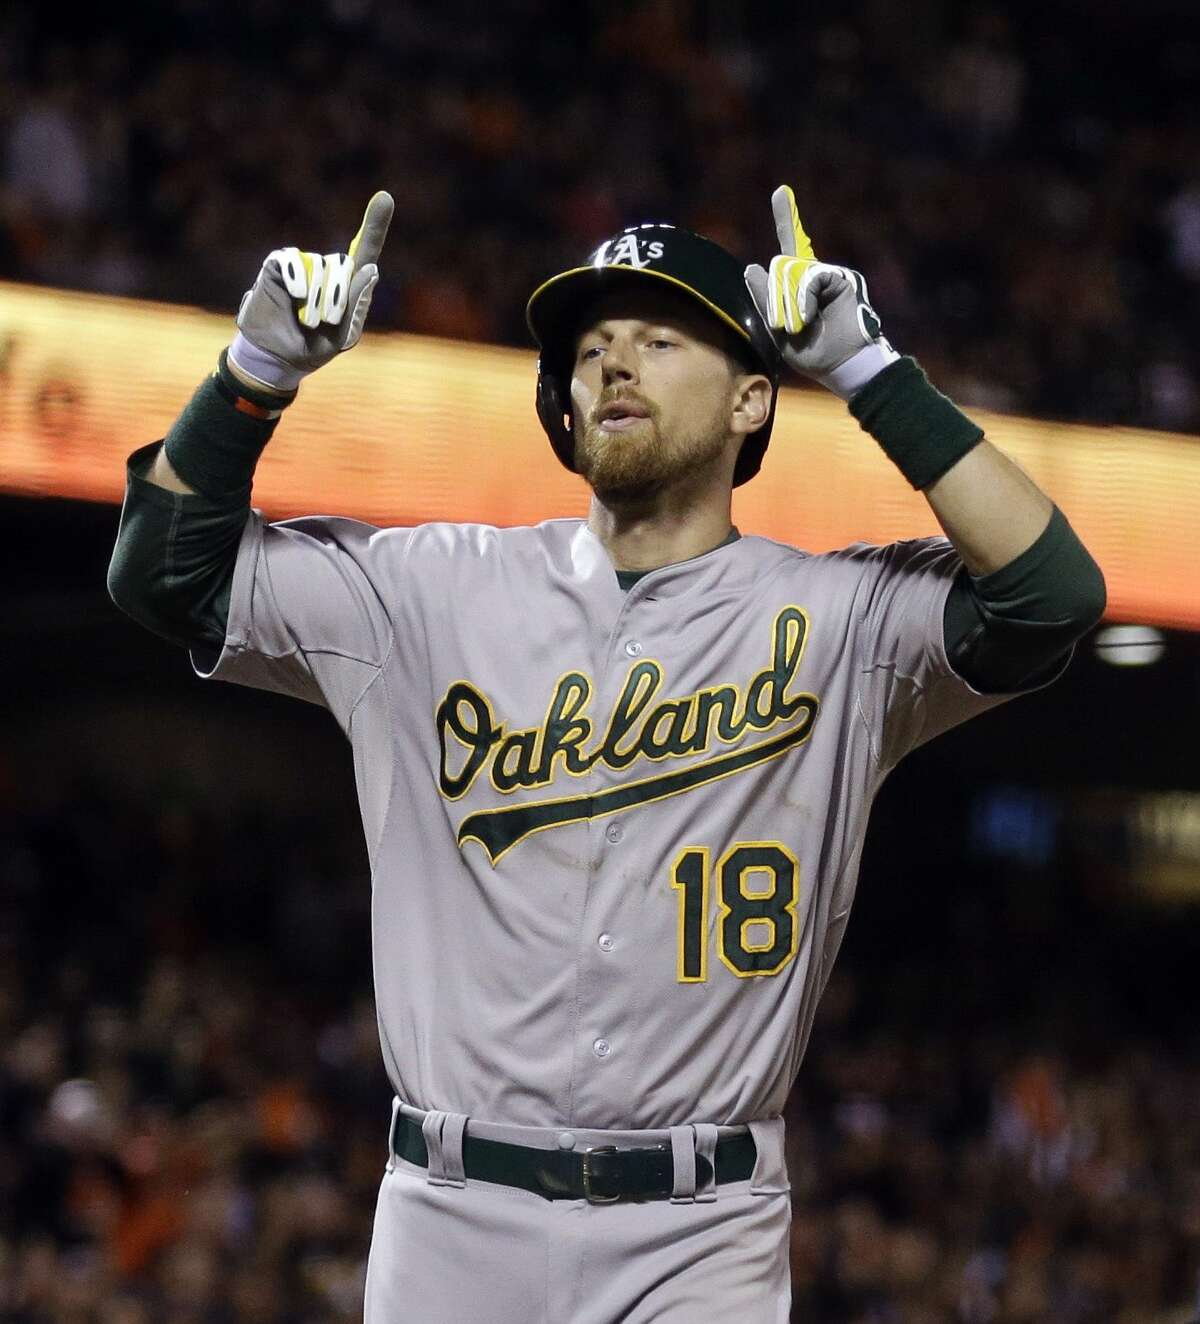 The Oakland Athletics traded Ben Zobrist to the Kansas City Royals on Tuesday.